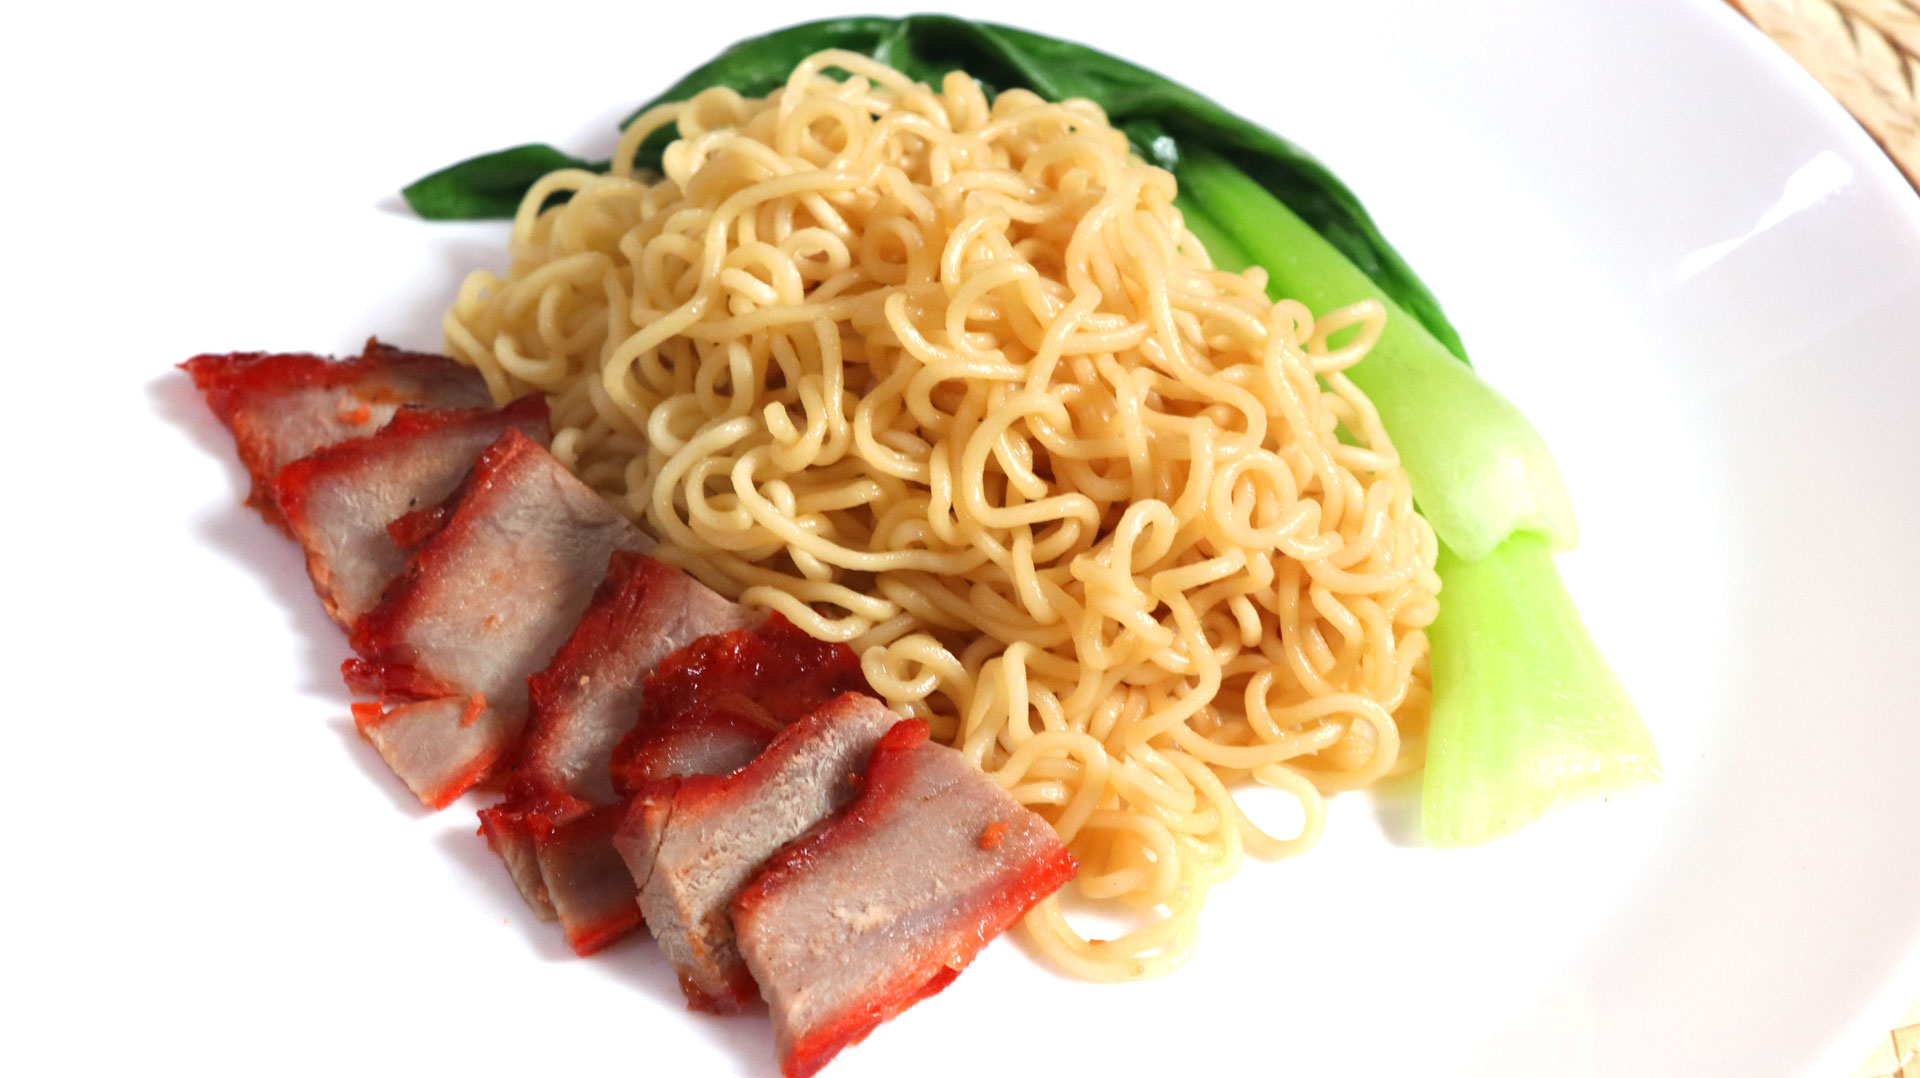 two-bad-chefs-wanton-noodles-dish-01.jpg